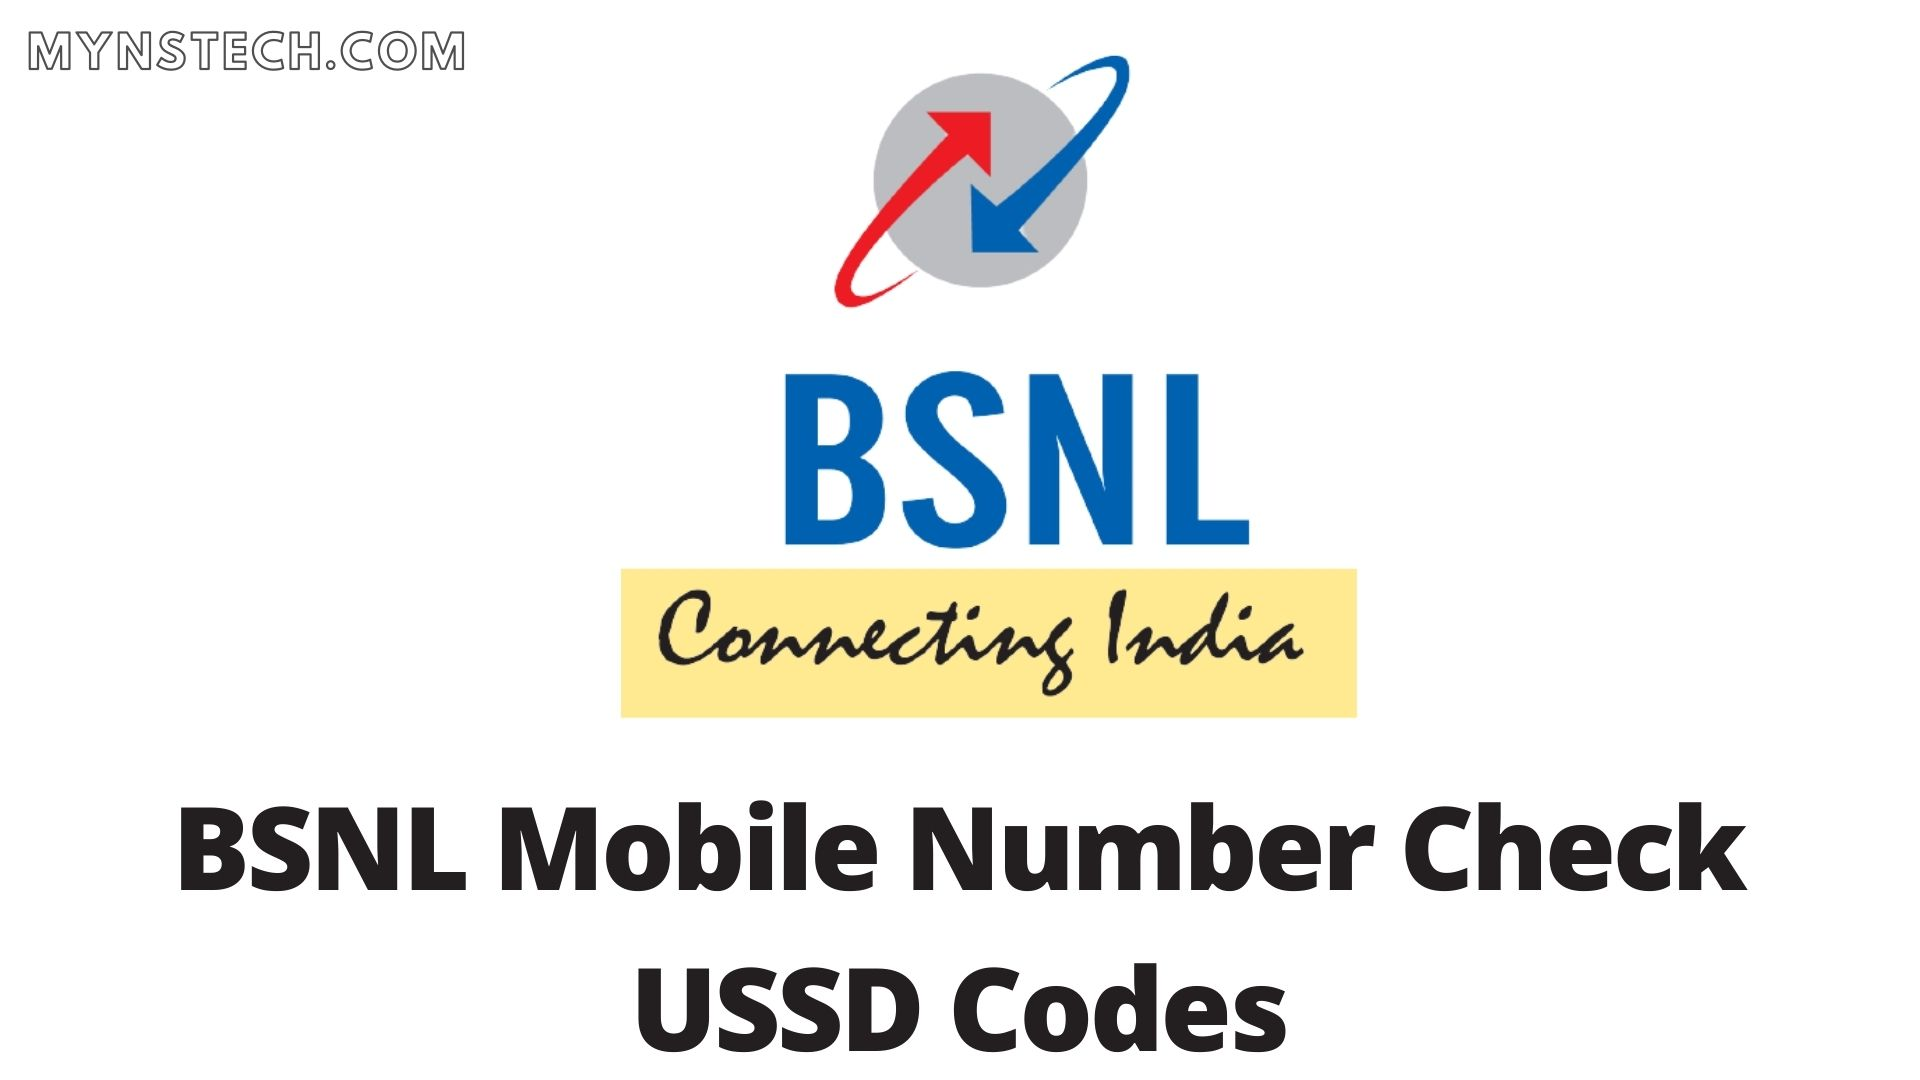 BSNL Mobile Number Check Code